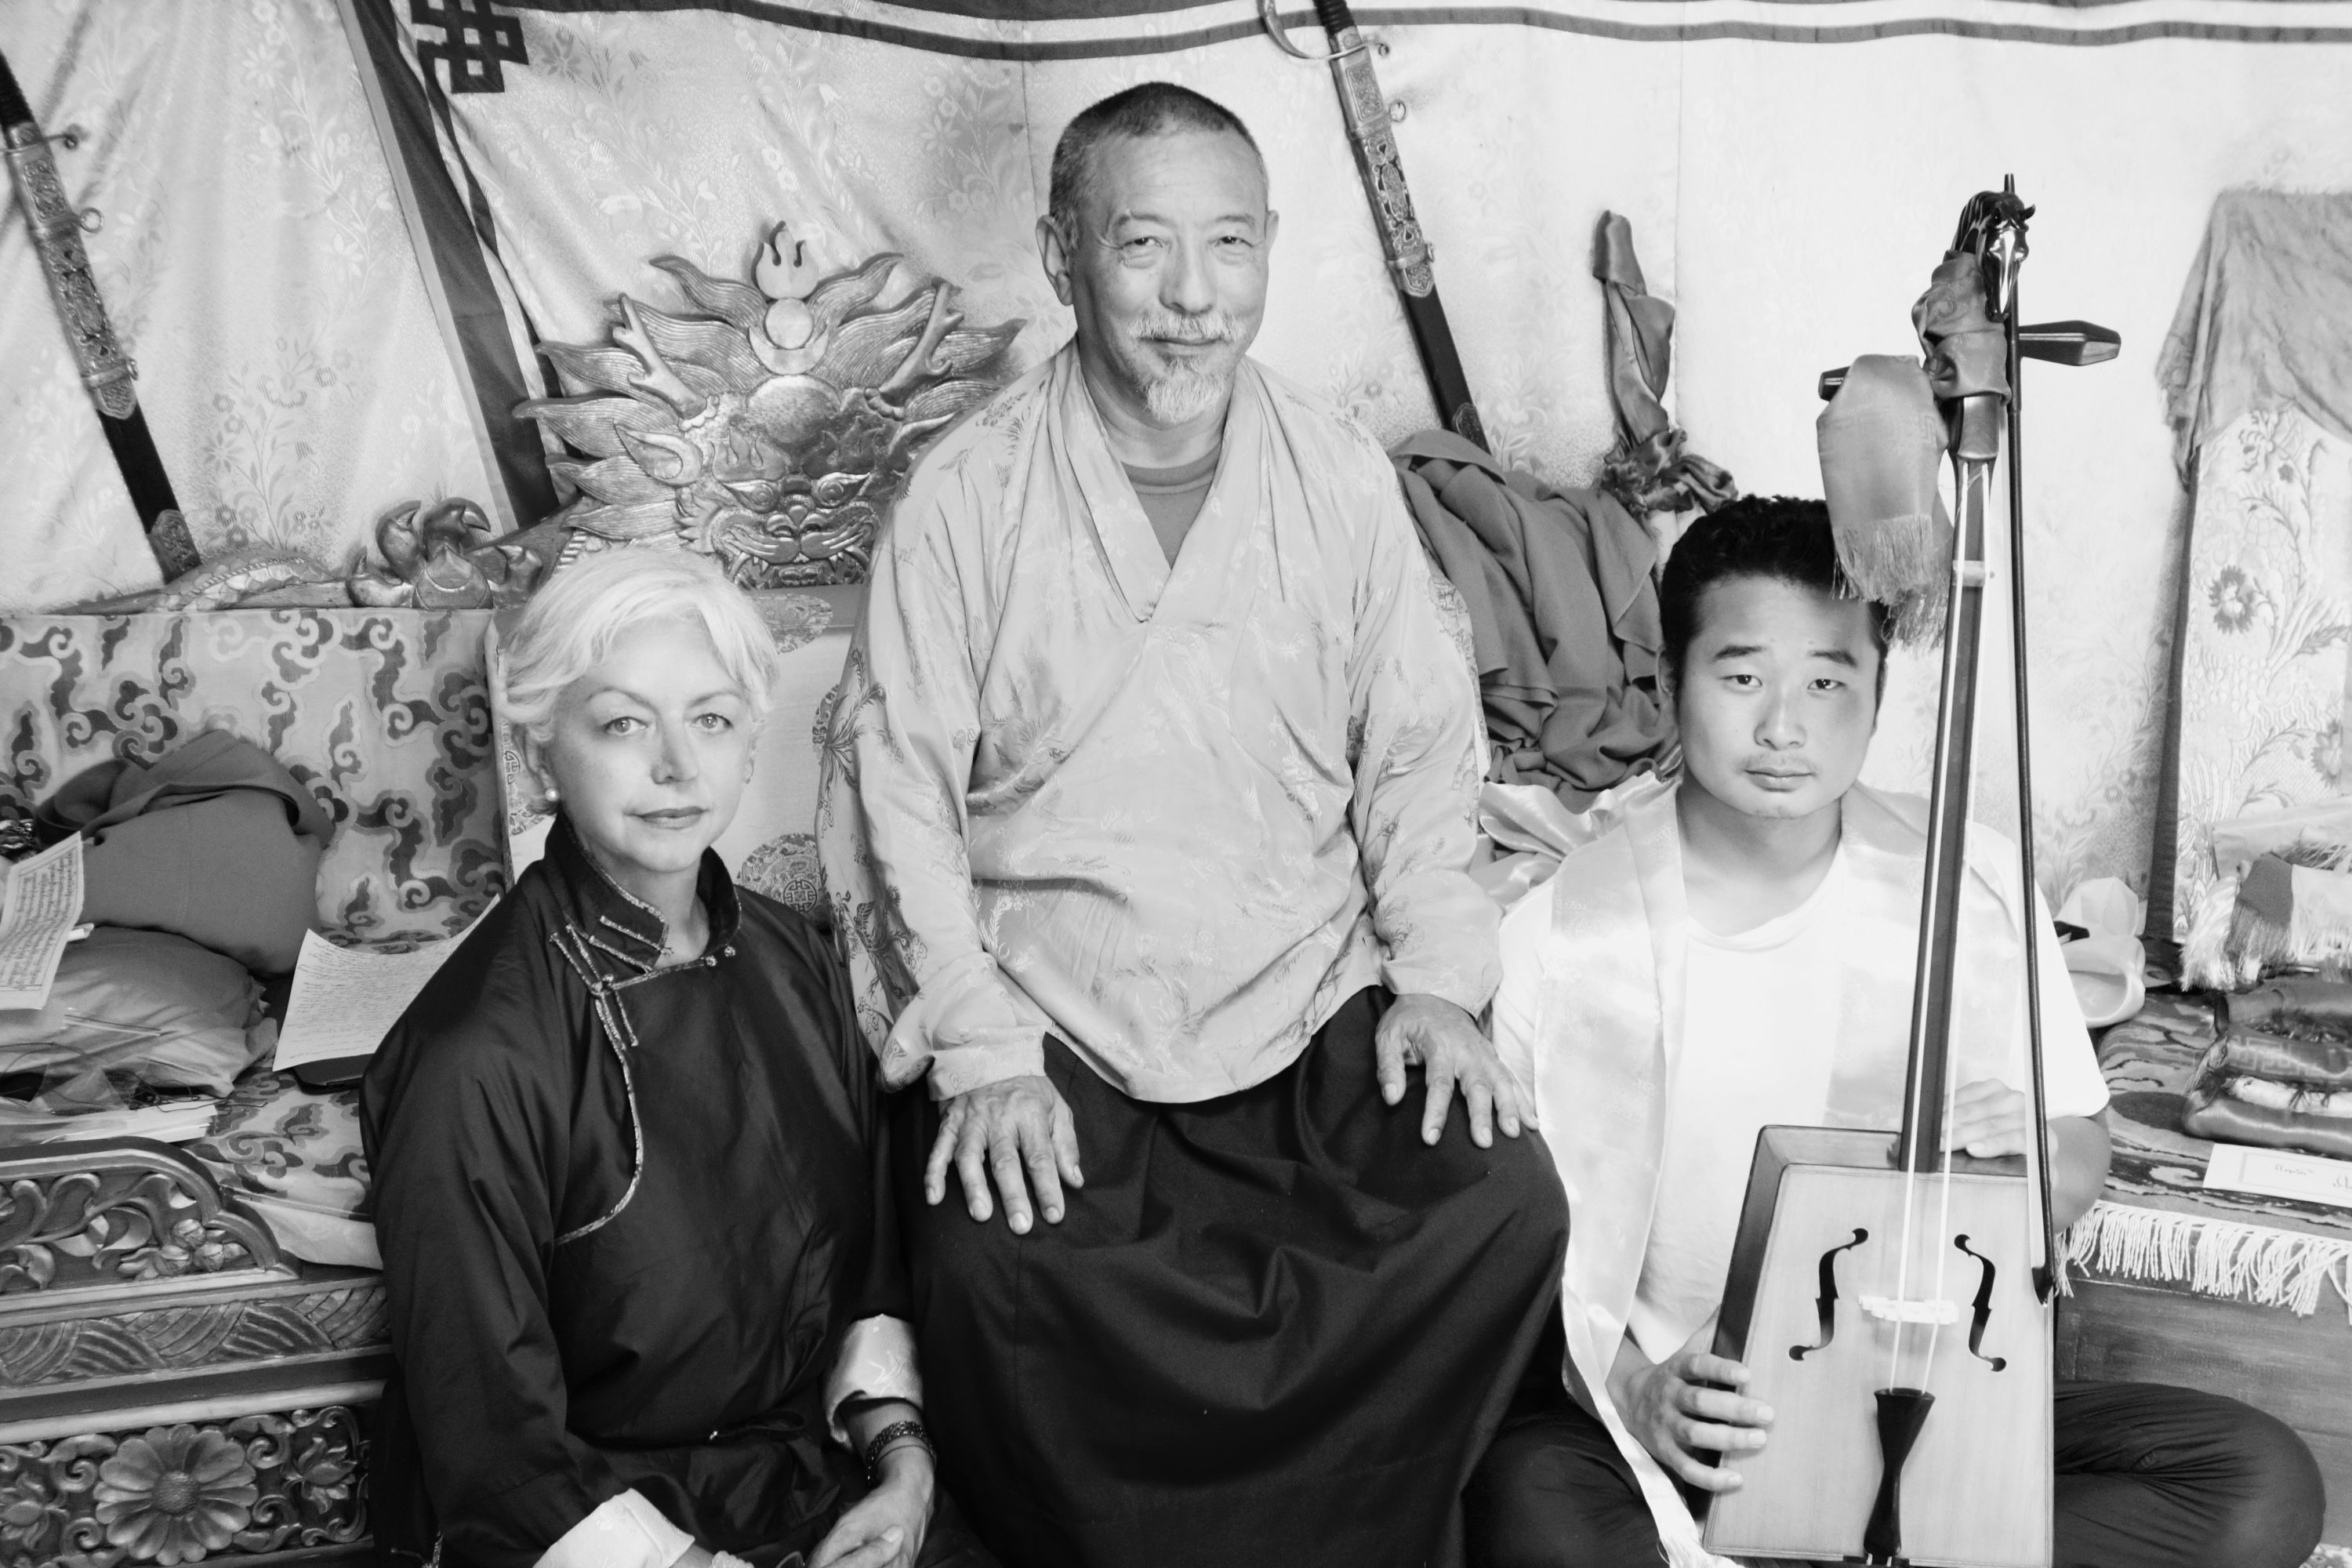 L to R: Catherine Pleteshner, Zasep Tulku from Canada, and Ulziikhishig Temuulen after his morin khuur performance. Delgeruun Choira Ger. Dundgovi Aimag, Gobi Desert Mongolia. 12 September 2013. Photograph: Zava Damdin Institute of Mongolia Photographic Archive.